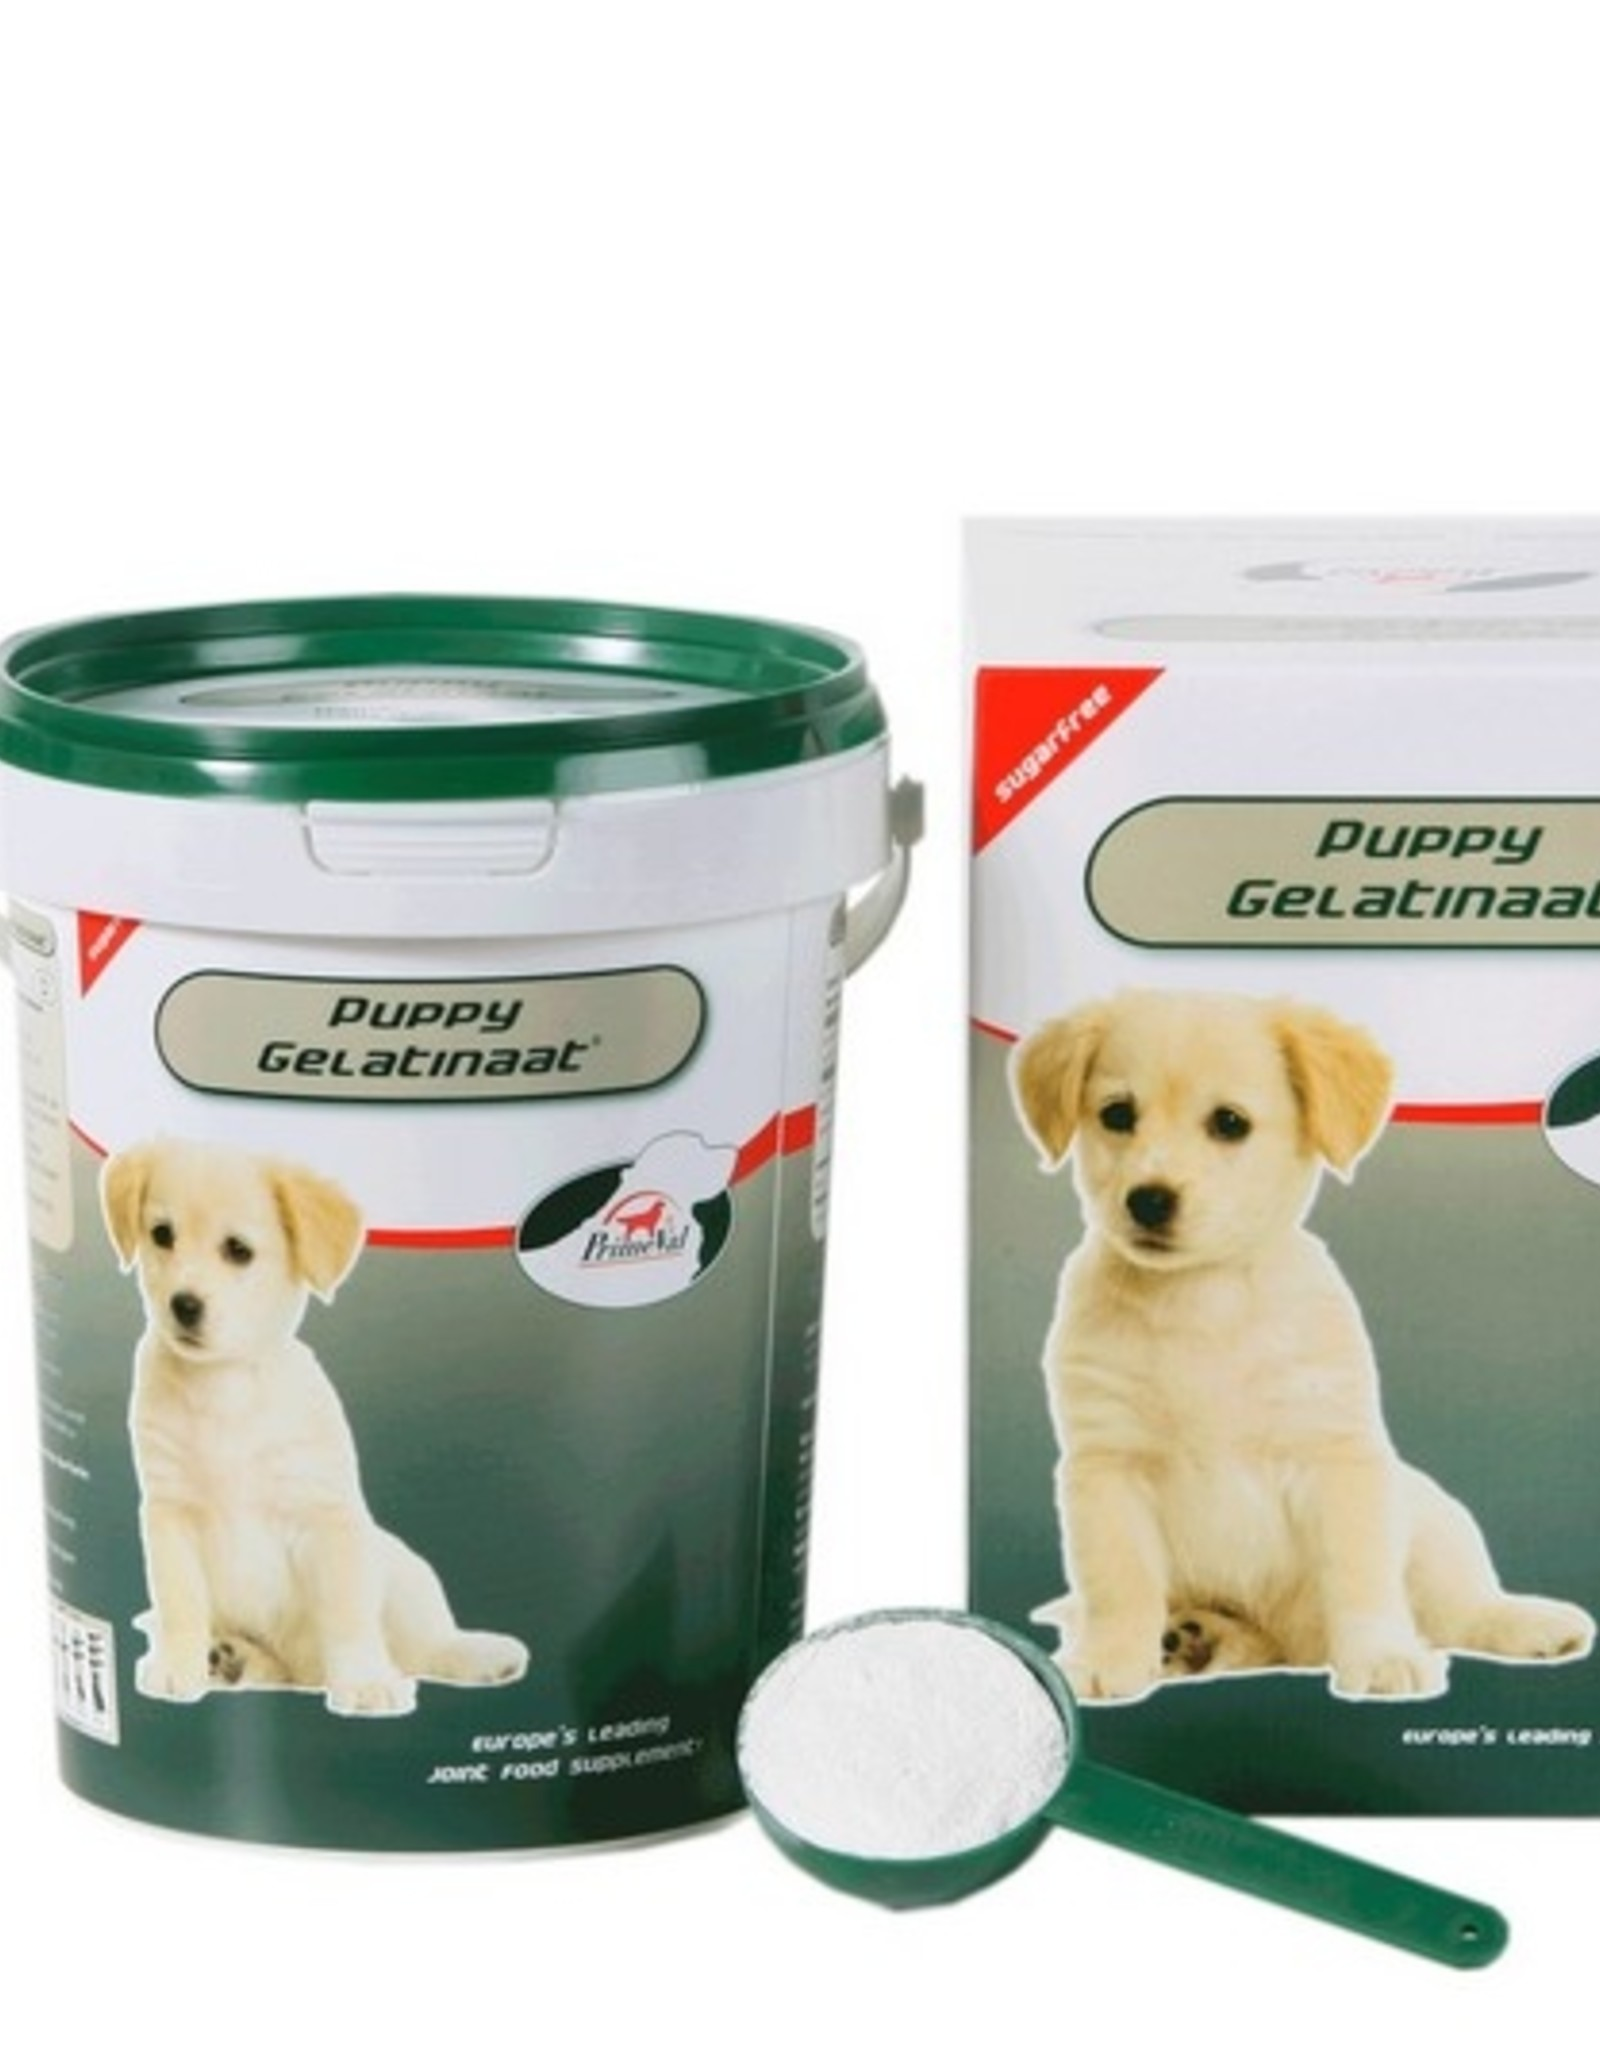 Primeval Dog Gelatinate Puppy 350gr